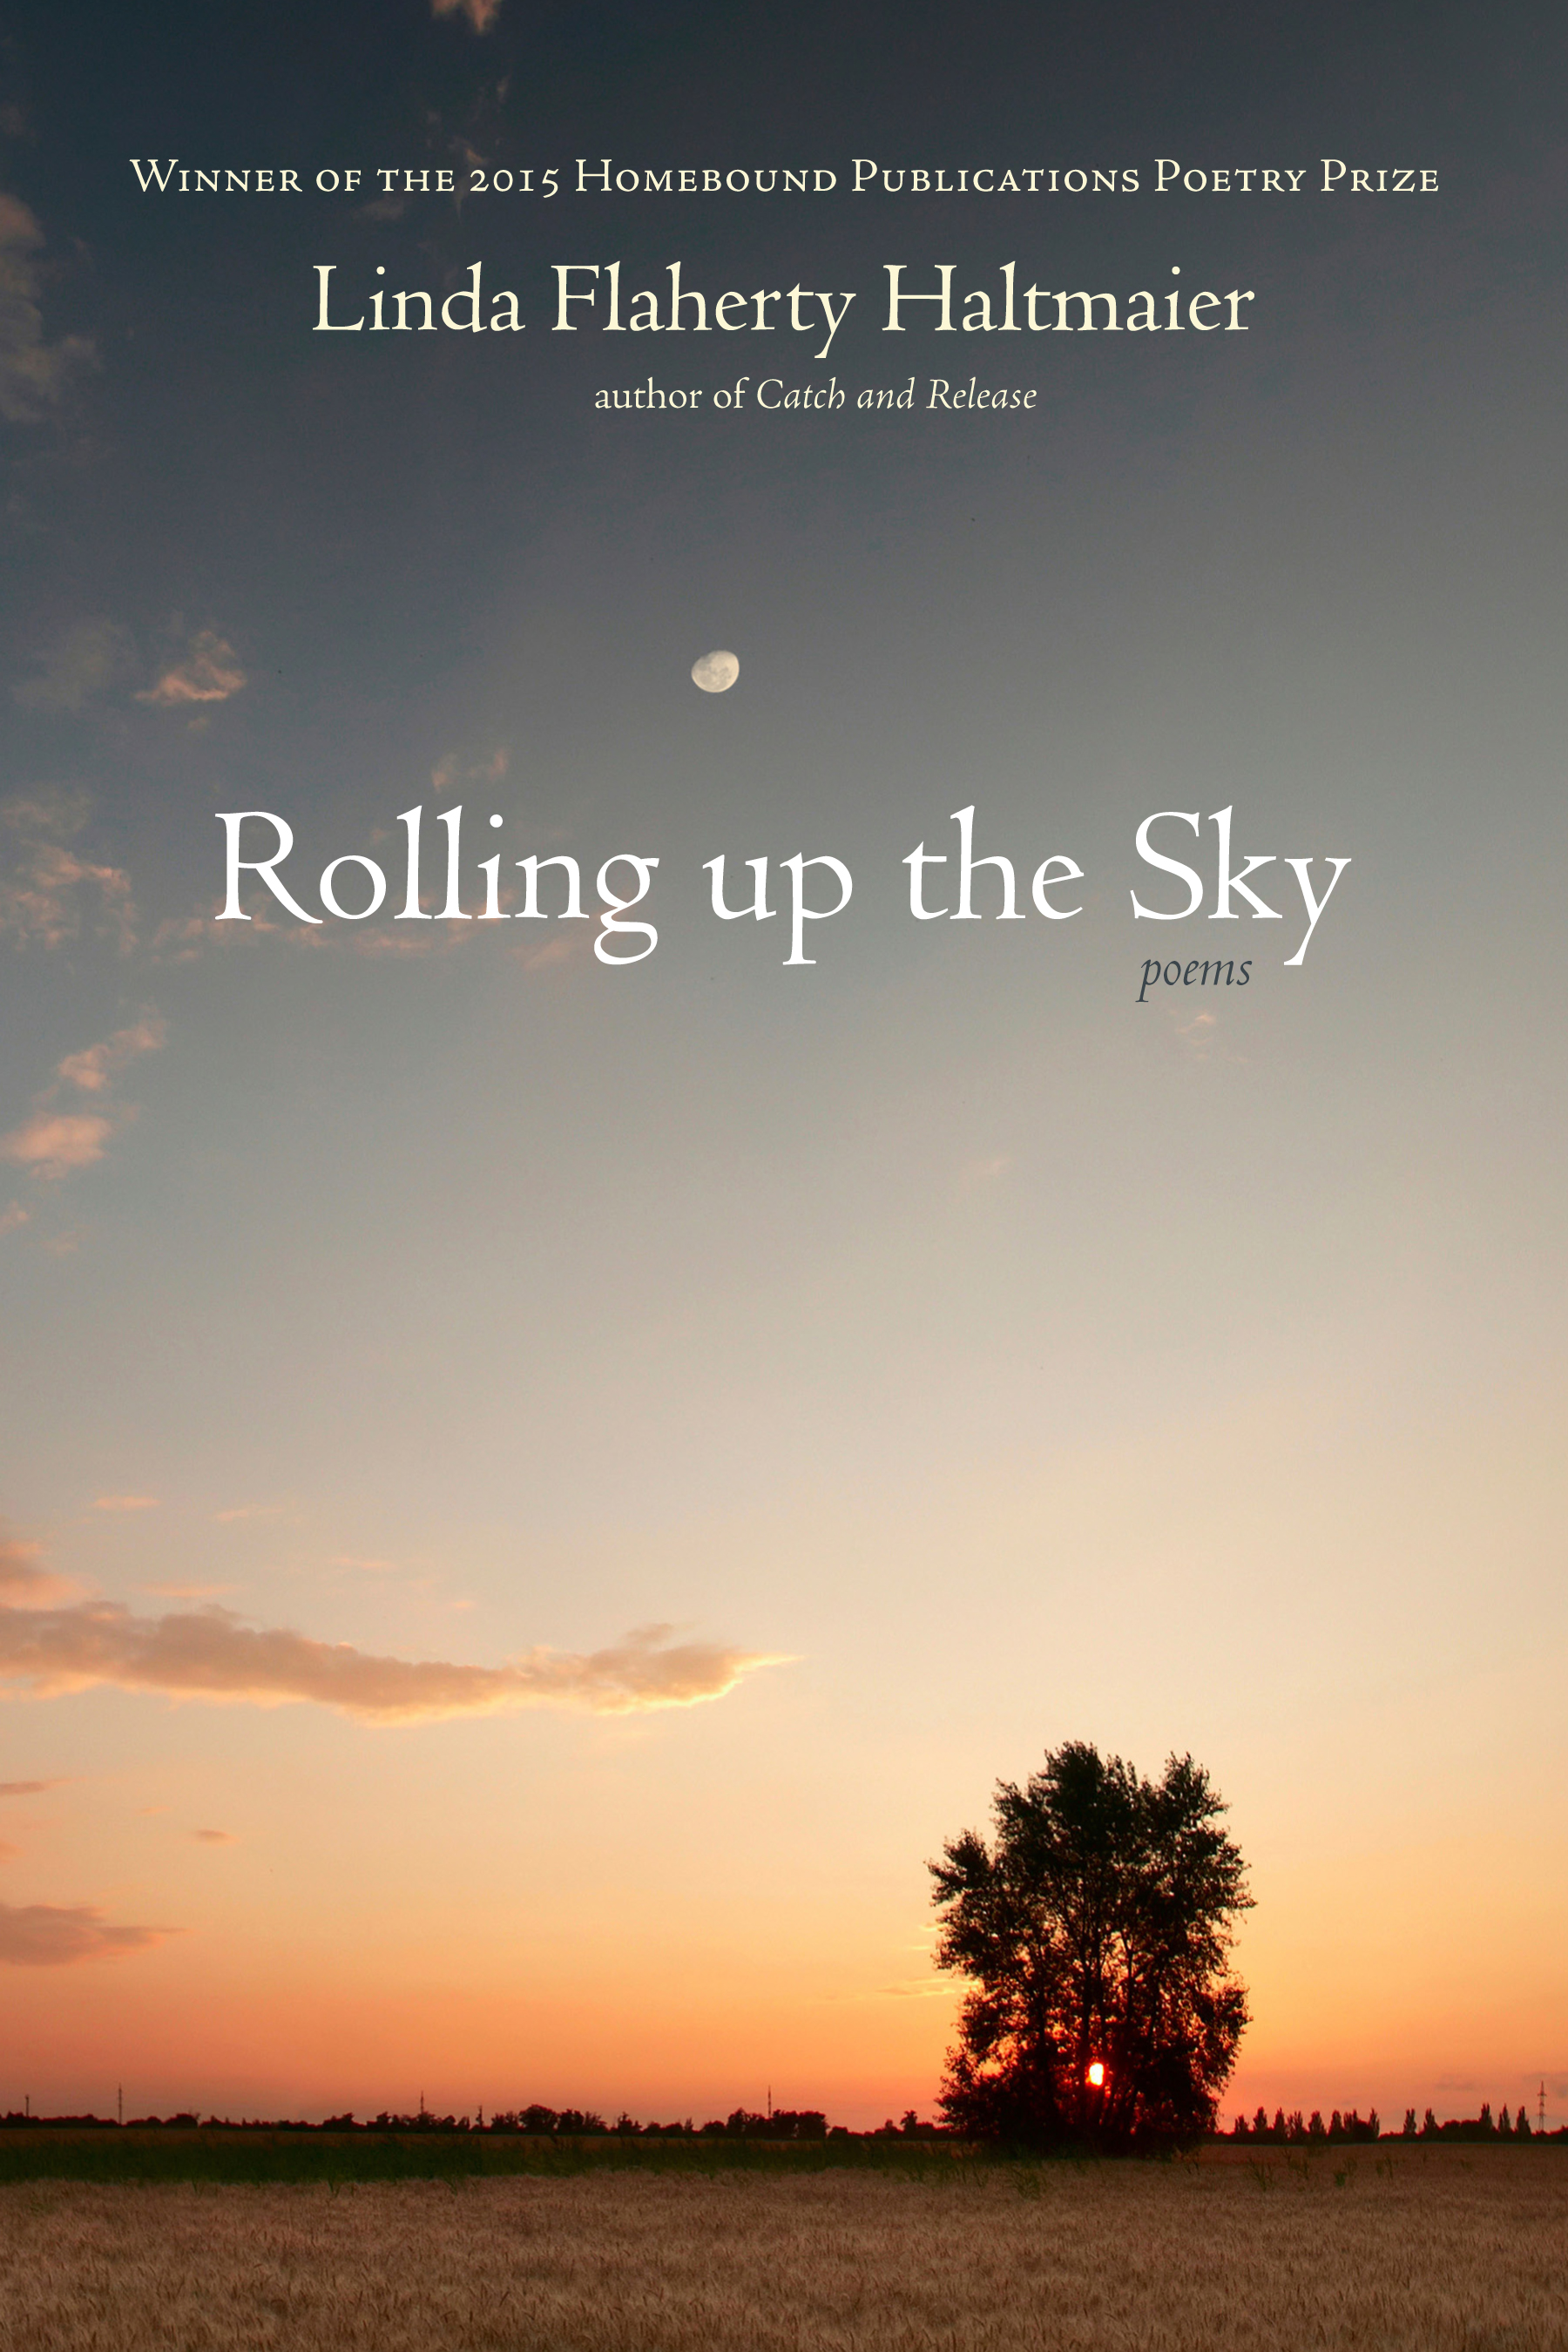 Rolling up the Sky